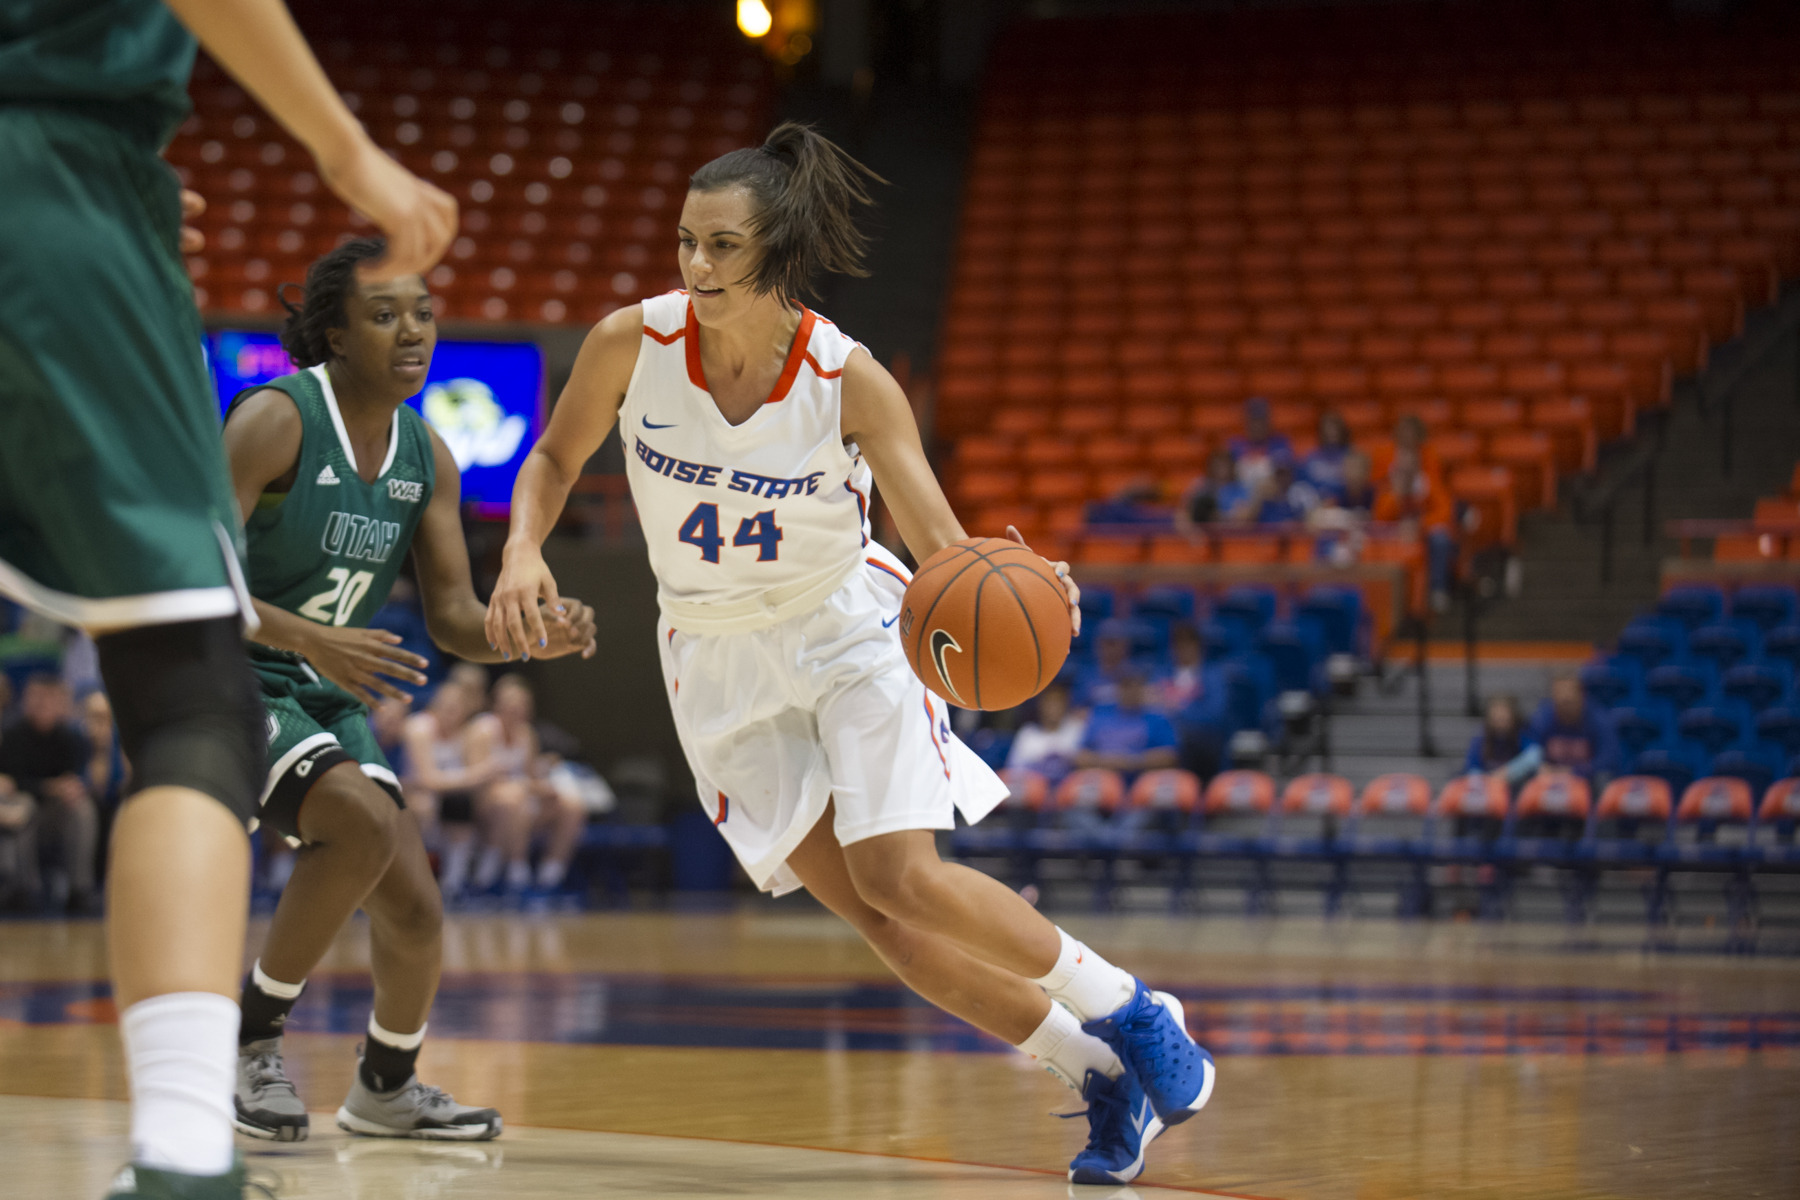 Brooke Pahukoa tallied season-high 22 points.